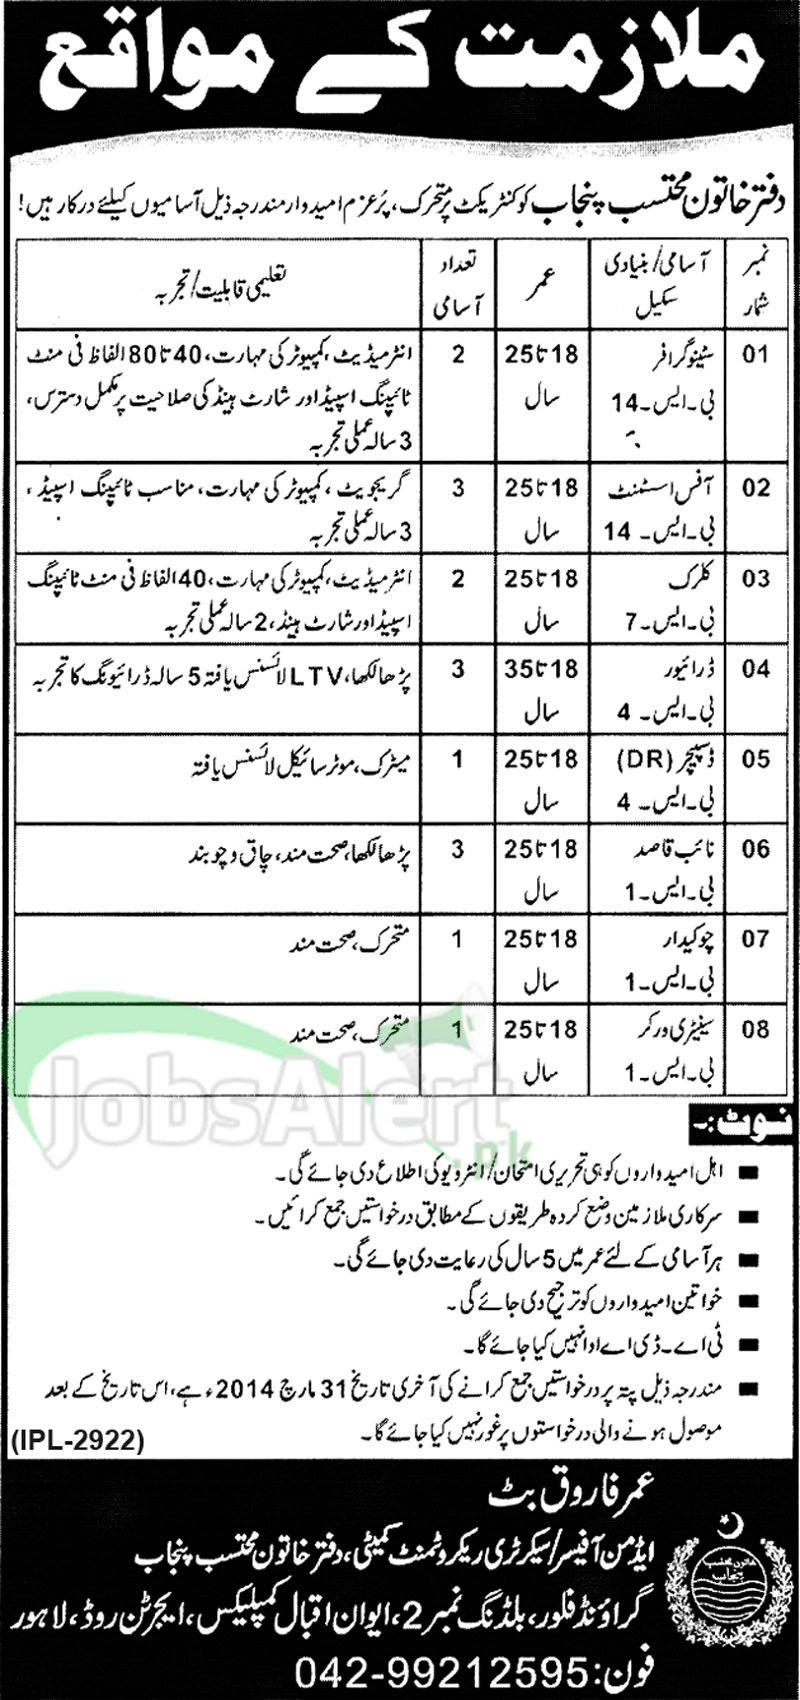 Govt. of the Punjab Jobs Stenographer & Assistant in Lahore